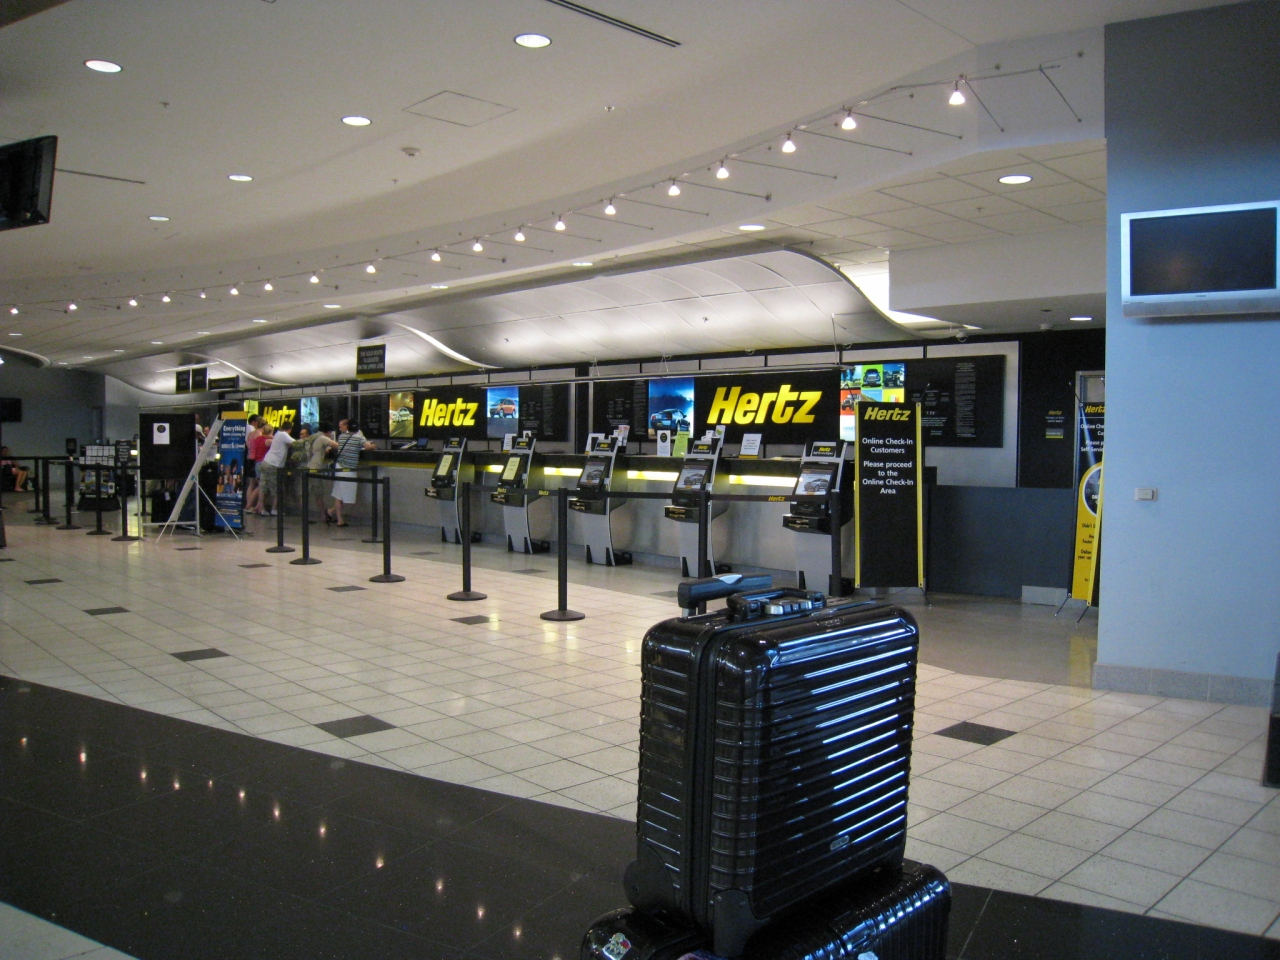 Get the best rental car deals from Hertz at Las Vegas Airport. Get quick service and additional perks with Hertz Gold Plus Rewards Program at Las Vegas!